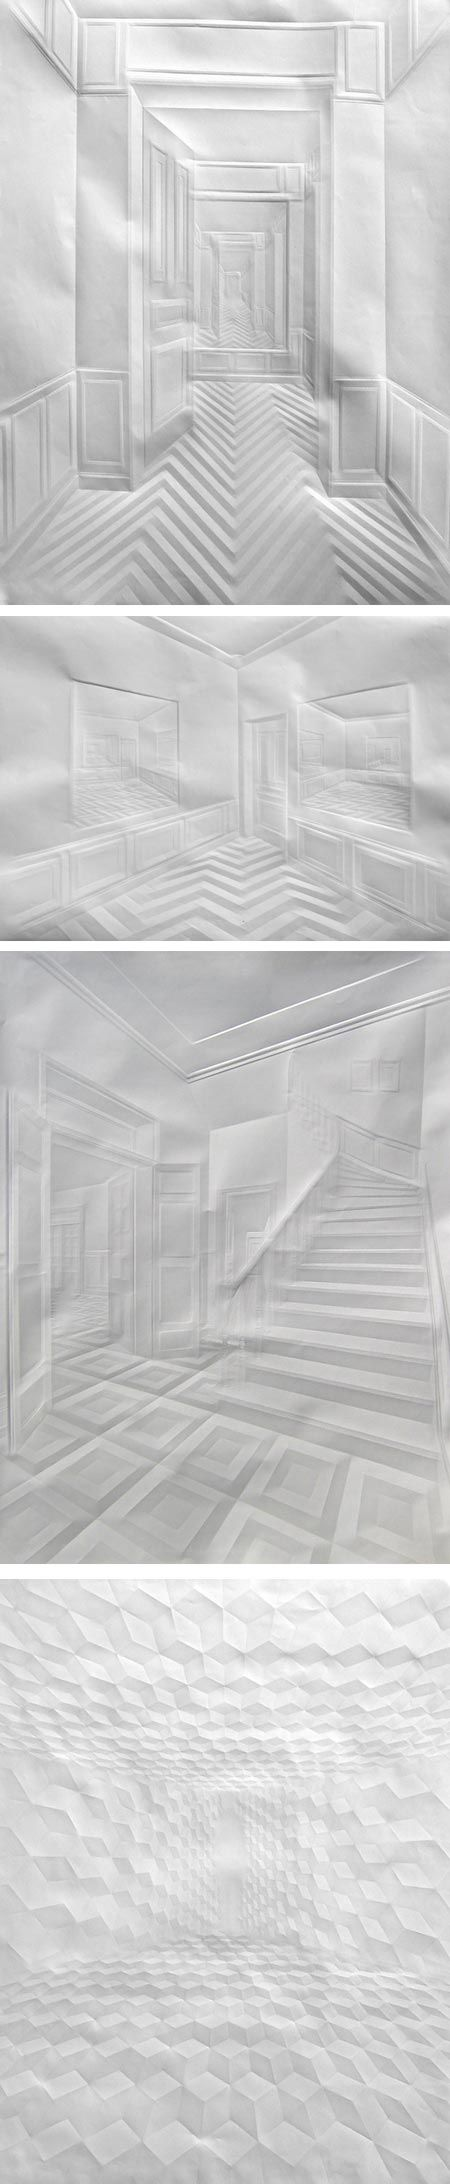 Simon Schubert. German artist Simon Schubert works in the novel medium of creased paper. using the sharp creases as lines he lets the differences in surface provide tones under the controlled lighting in which the piece is photographed.